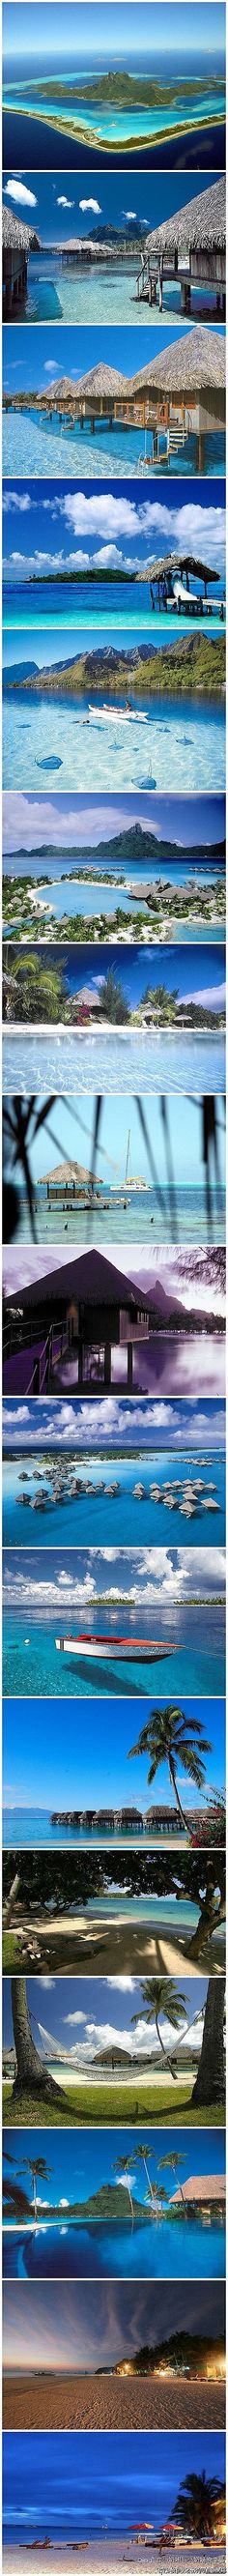 Tahiti's Bora Bora     boy this is HEAVEN!!!!!